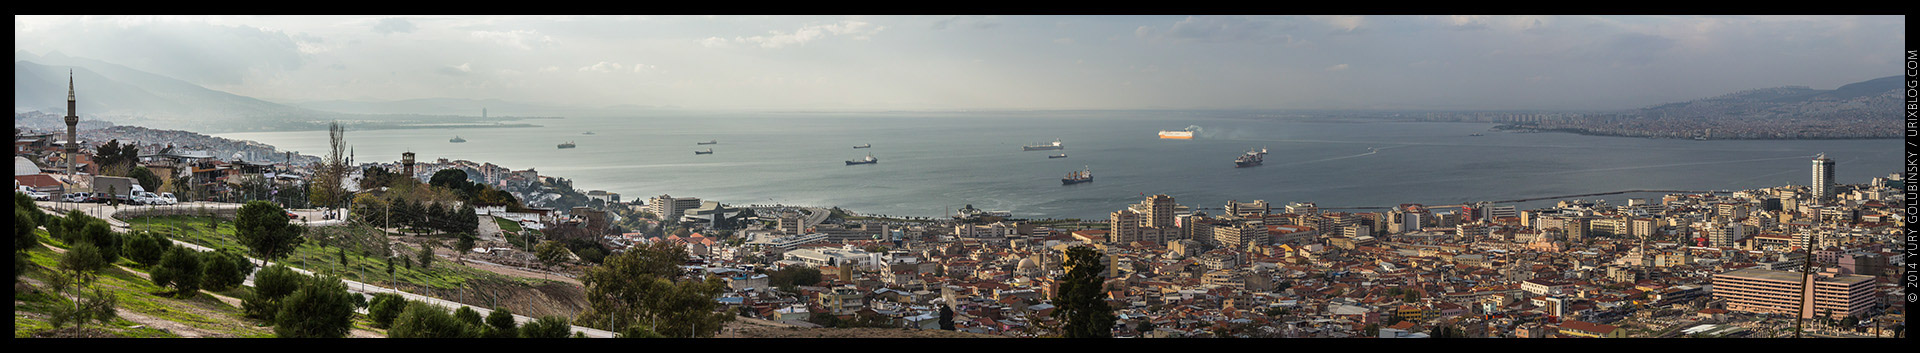 2014, Izmir, viewpoint, Kadifekale, castle, fortress, hill, Turkey, panorama, horizon, Aegean sea, ships, bay